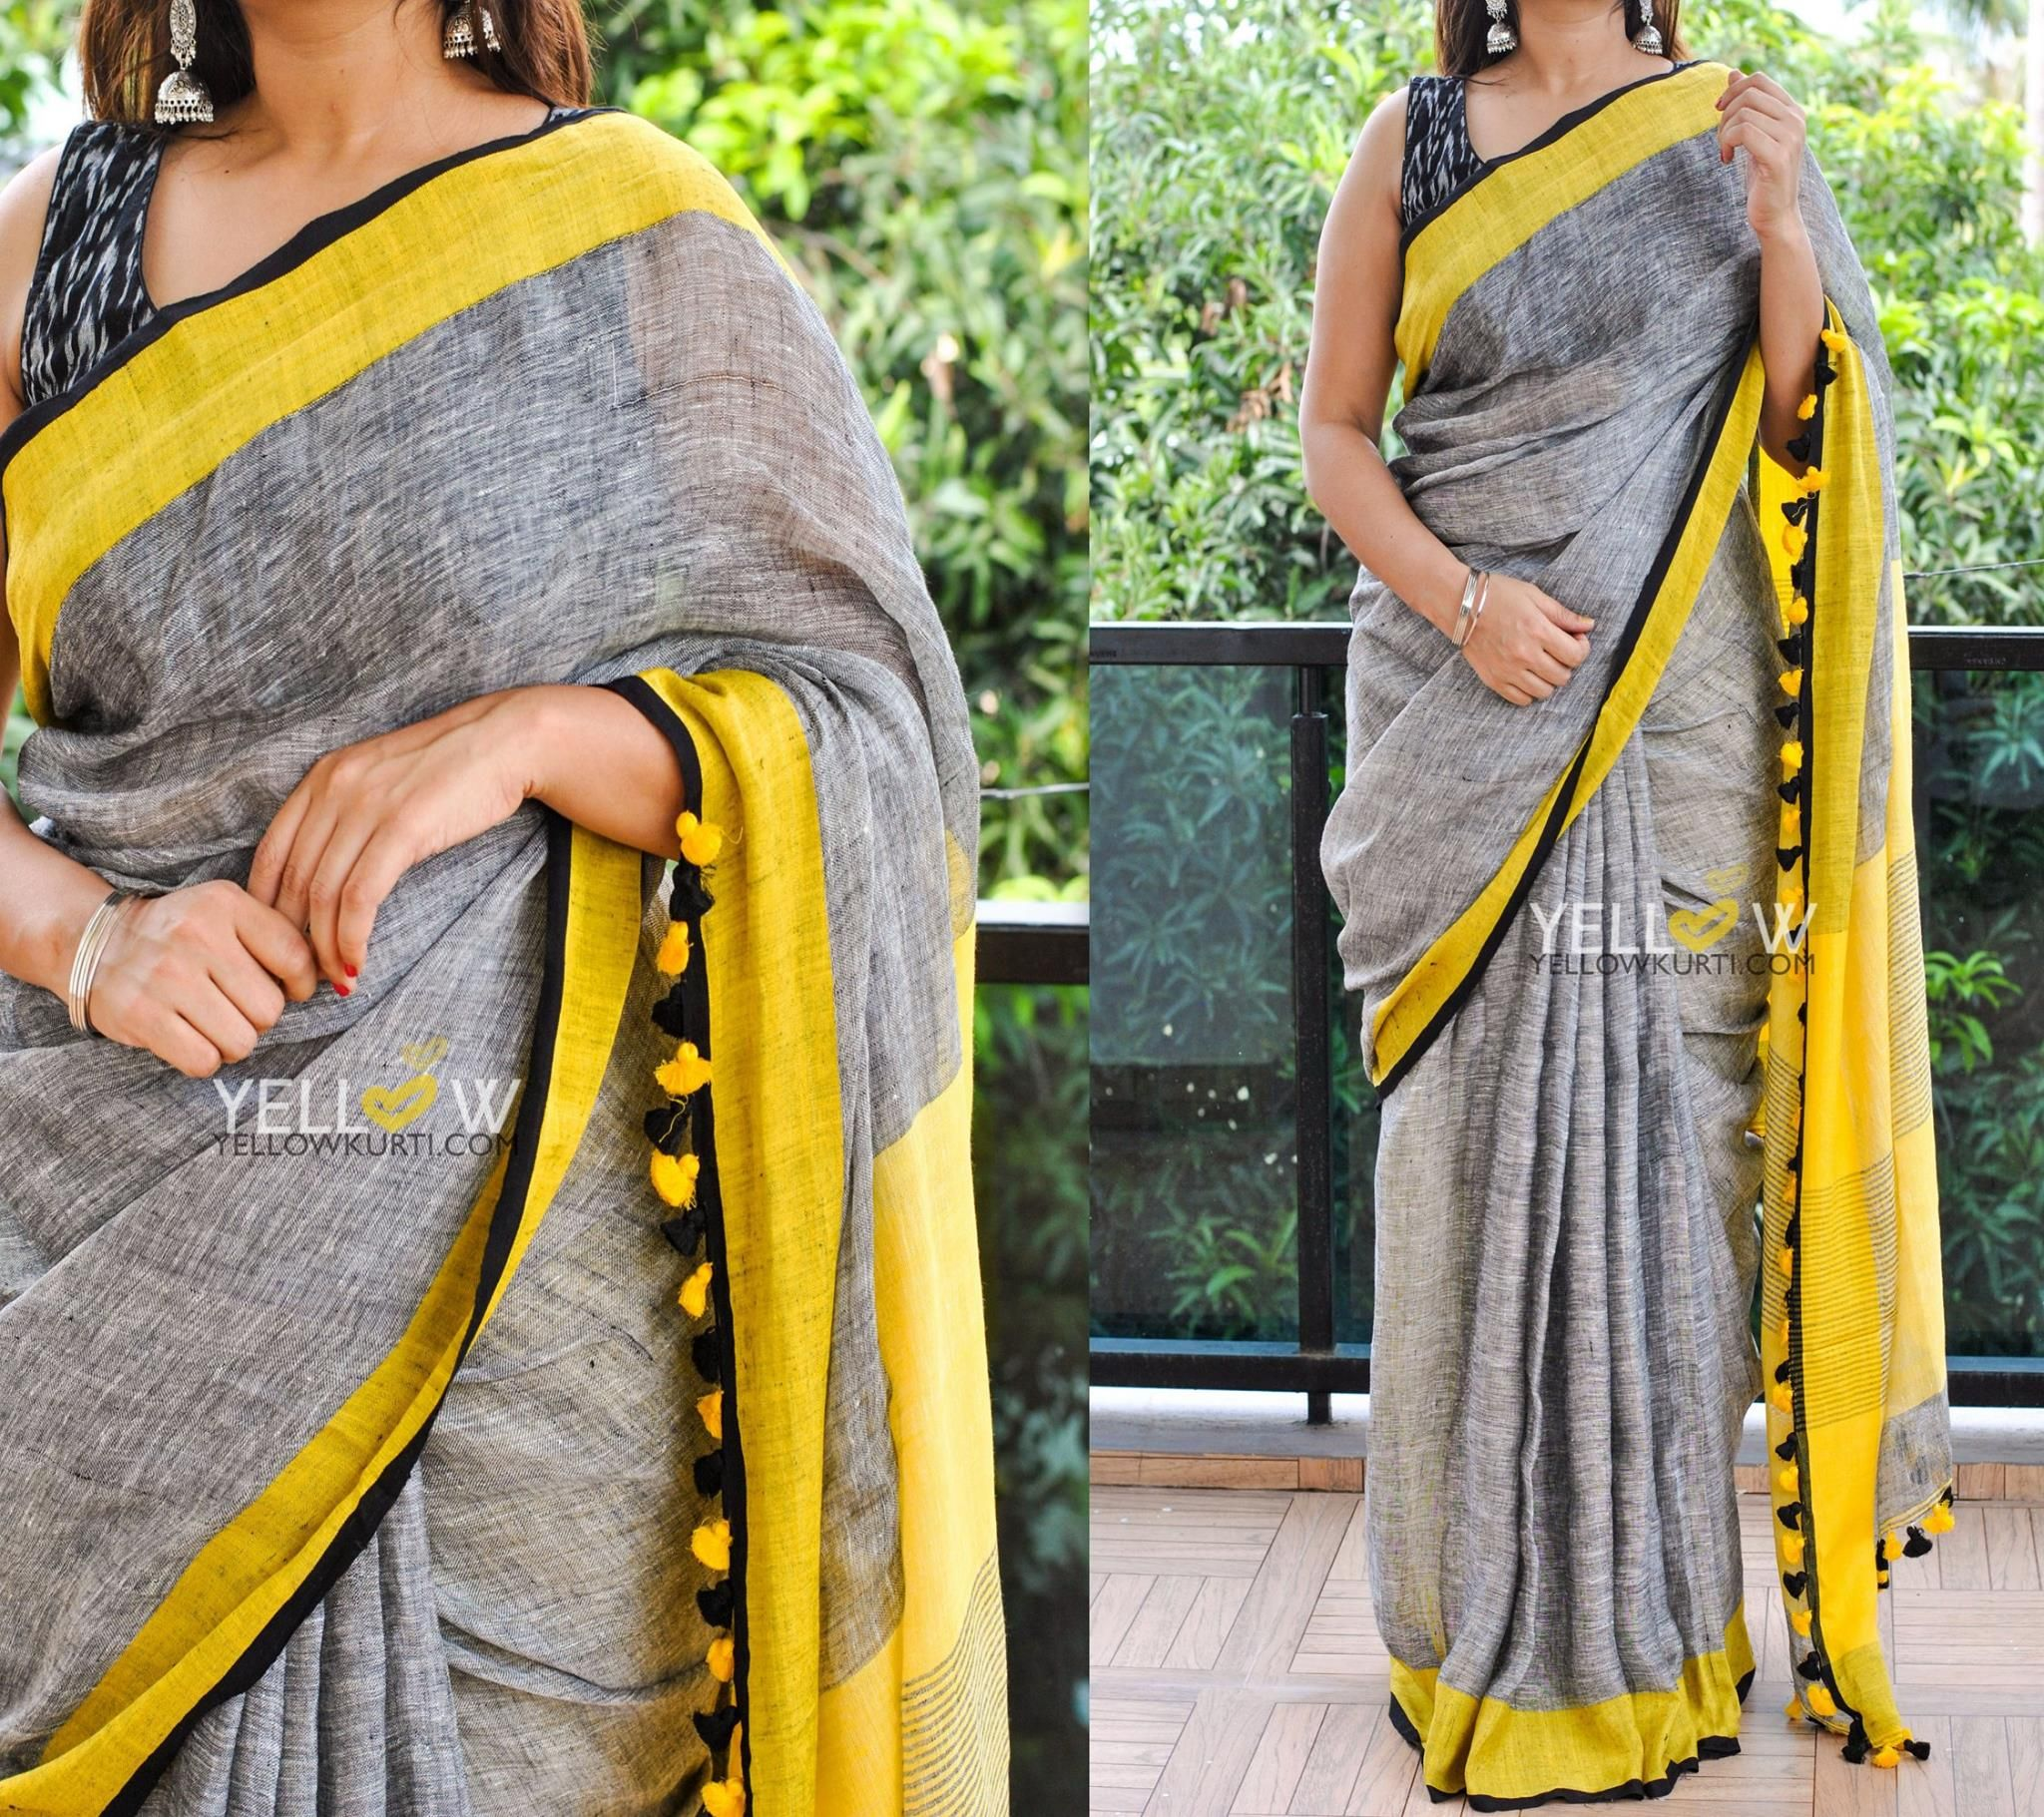 aca9ccade9381c Pure Linen Saree in gray and yellow and striped Pallu . Blouse - Comes with  shaded yellow blouse material Price - 4899 INR .